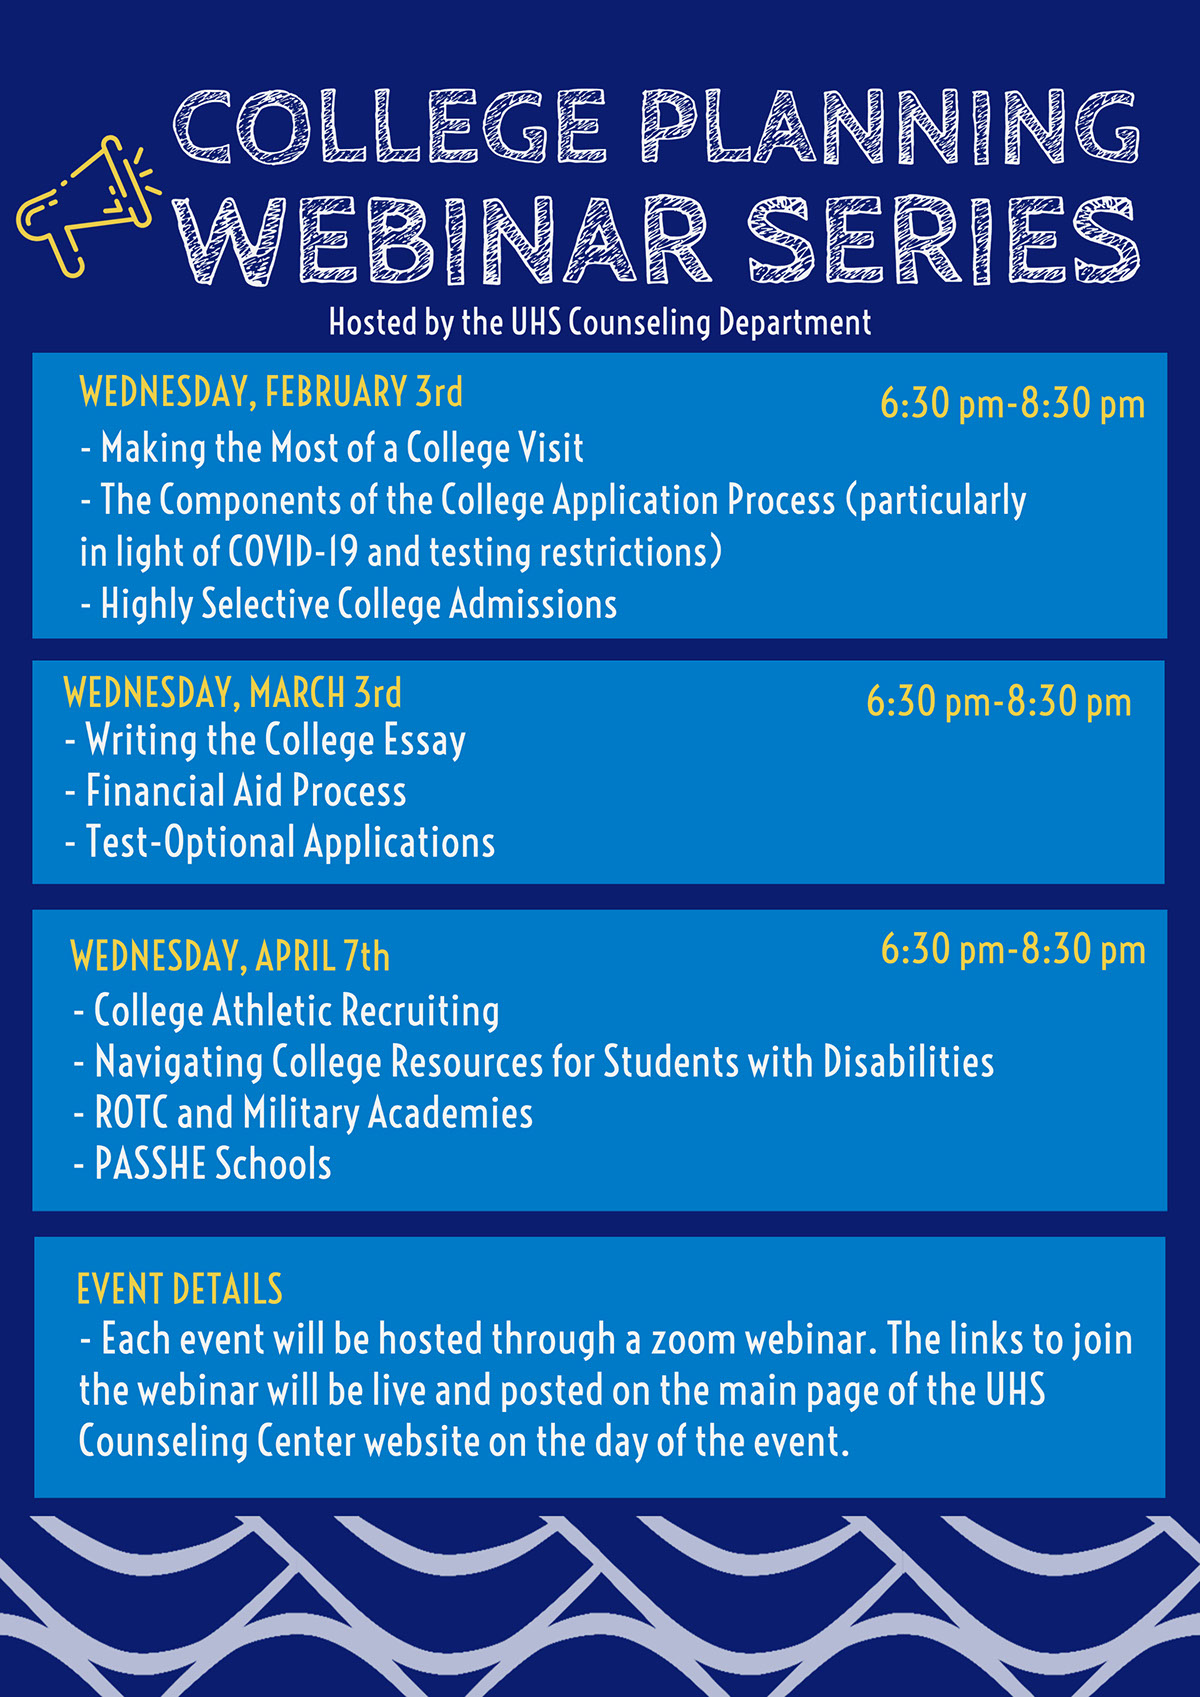 College Planning Webinar Series College Planning Webinar Series 6:30 pm-8:30 pm 6:30 pm-8:30 pm 6:30 pm-8:30 pm WEDNESDAY, MARCH 3rd EVENT DETAILS WEDNESDAY, FEBRUARY 3rd WEDNESDAY, APRIL 7th - Each event will be hosted through a zoom webinar. The links to join the webinar will be live and posted on the main page of the UHS Counseling Center website on the day of the event. - College Athletic Recruiting - Navigating College Resources for Students with Disabilities - ROTC and Military Academies - PASSHE Schools - Writing the College Essay - Financial Aid Process - Test-Optional Applications - Making the Most of a College Visit - The Components of the College Application Process (particularly in light of COVID-19 and testing restrictions) - Highly Selective College Admissions Hosted by the UHS Counseling Department